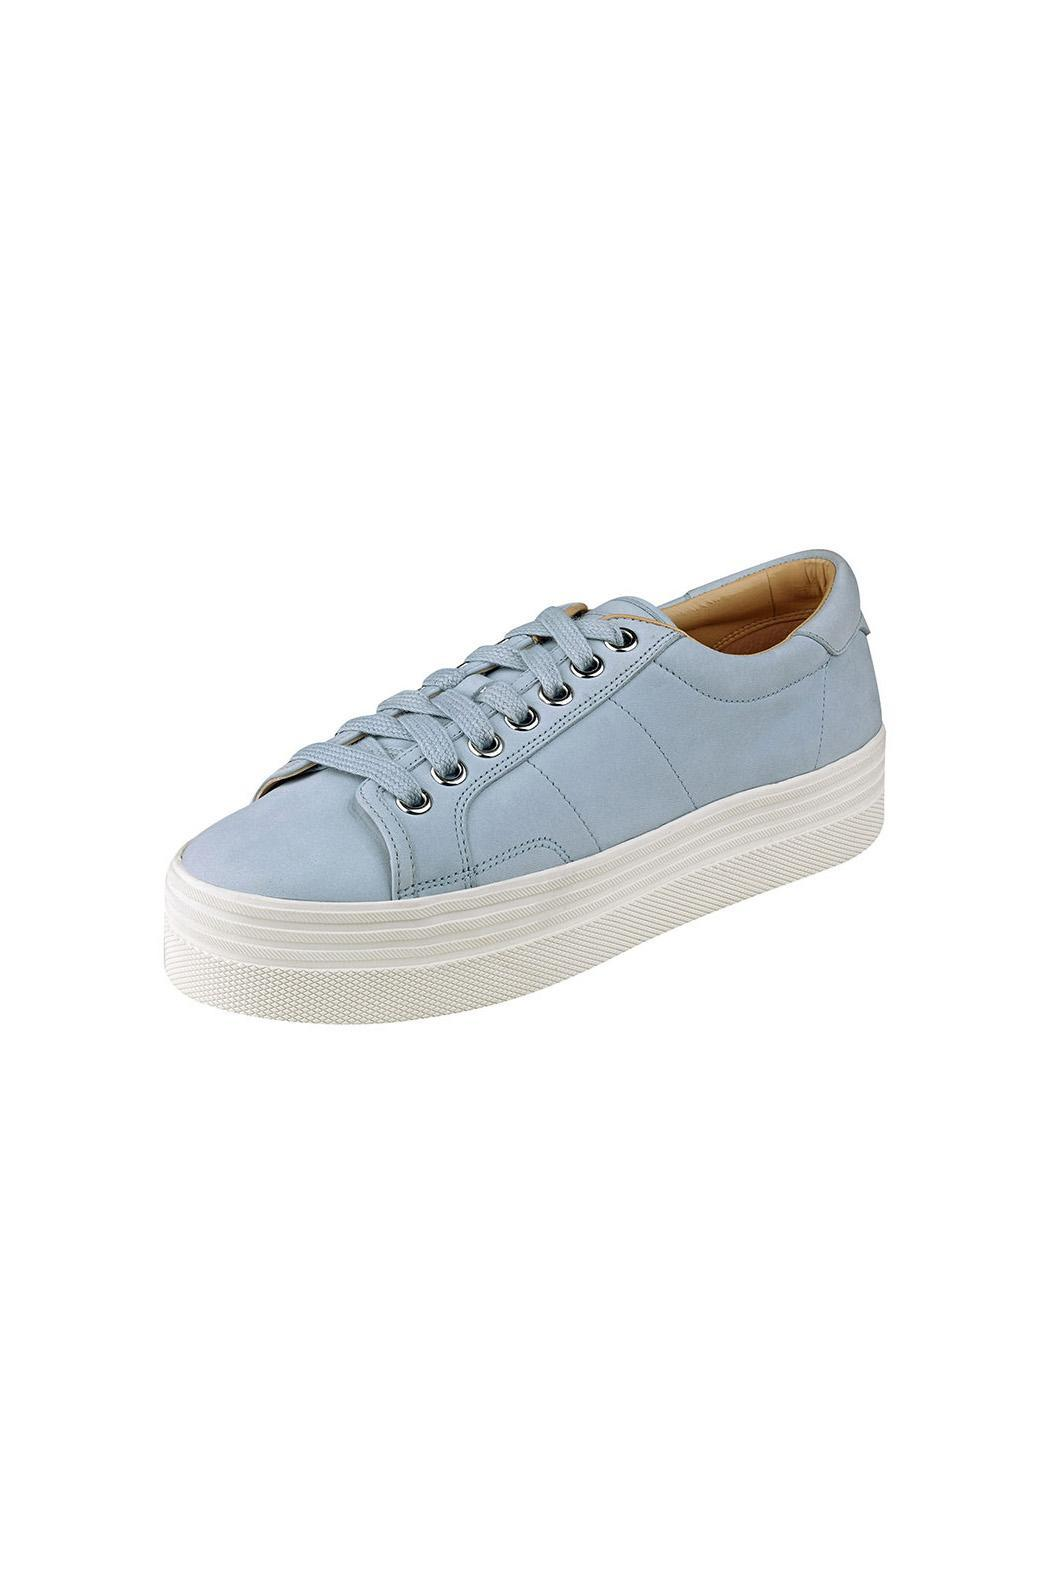 a892763f0a42 Marc Fisher LTD Blue Low Top Sneakers from Alexandria by Bishop ...